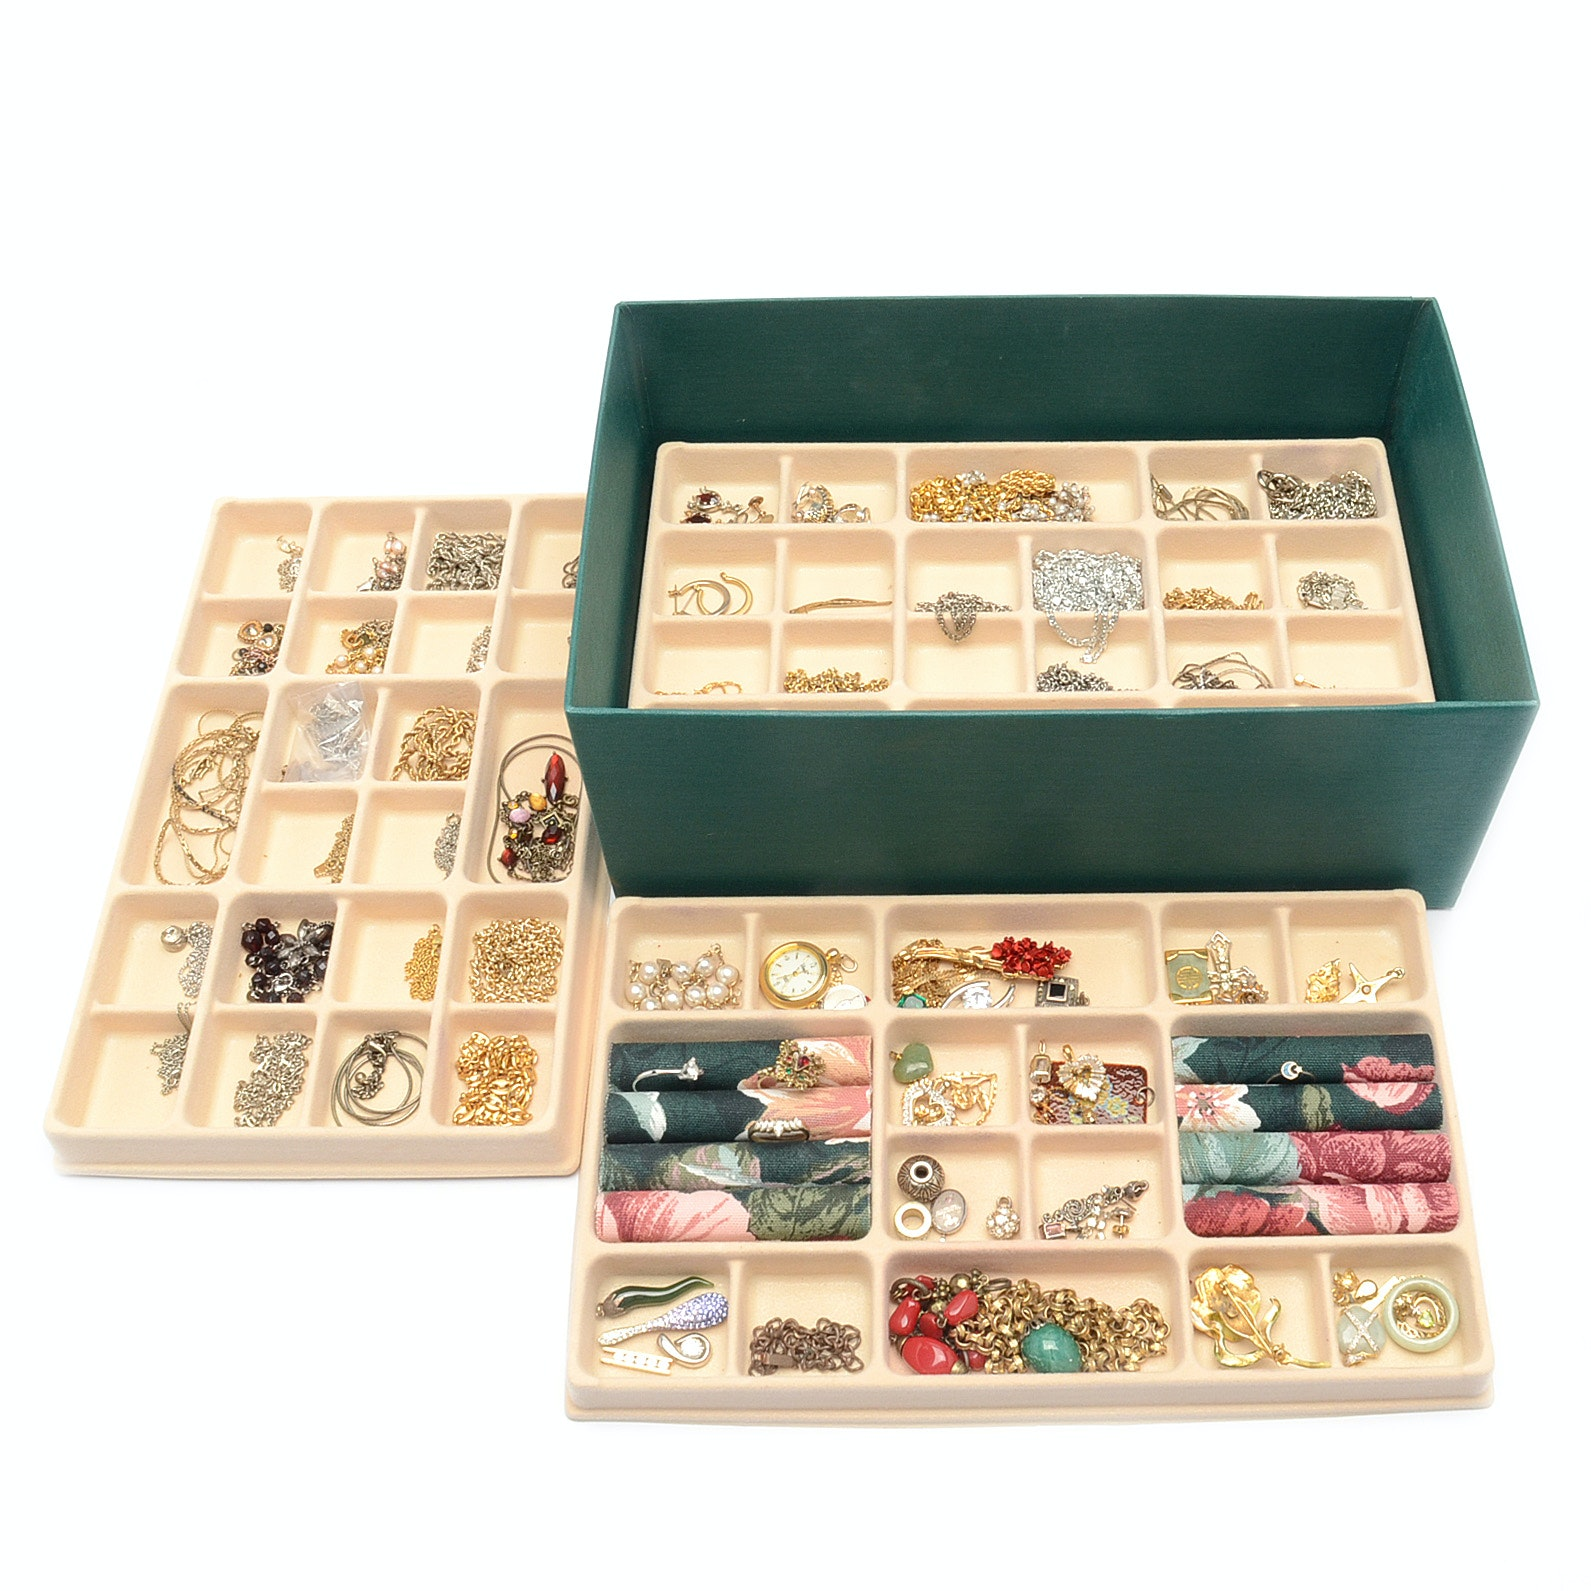 Large Assortment of Gold and Silver Tone Jewelry in a Four Layer Jewelry Chest